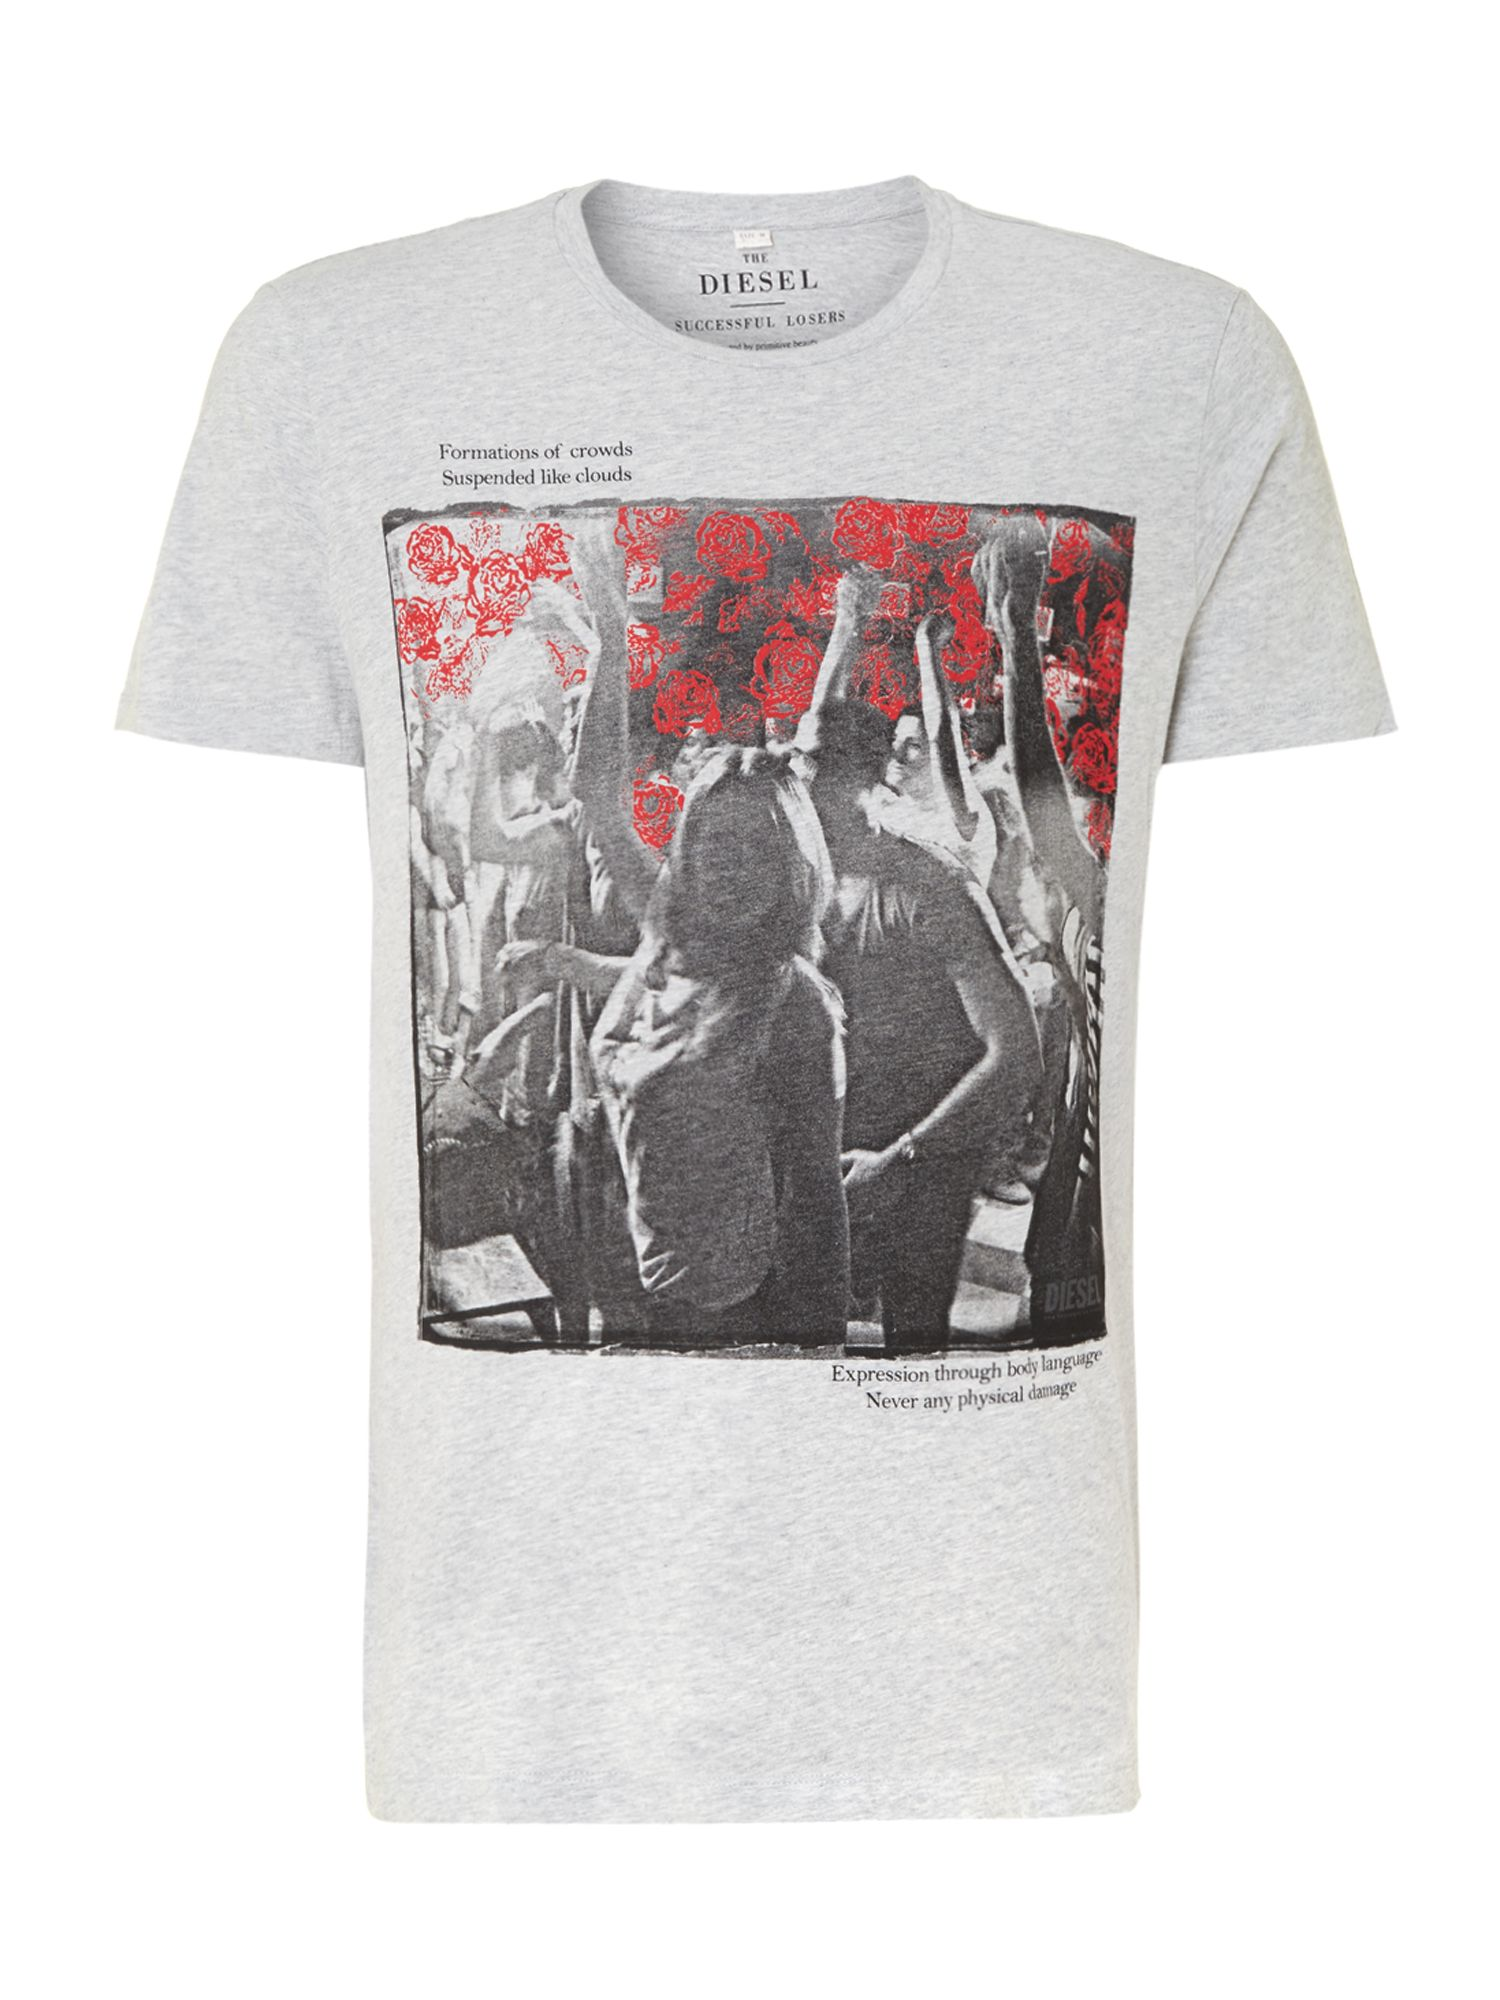 Diesel Floral Band T Shirt In Gray For Men Lyst